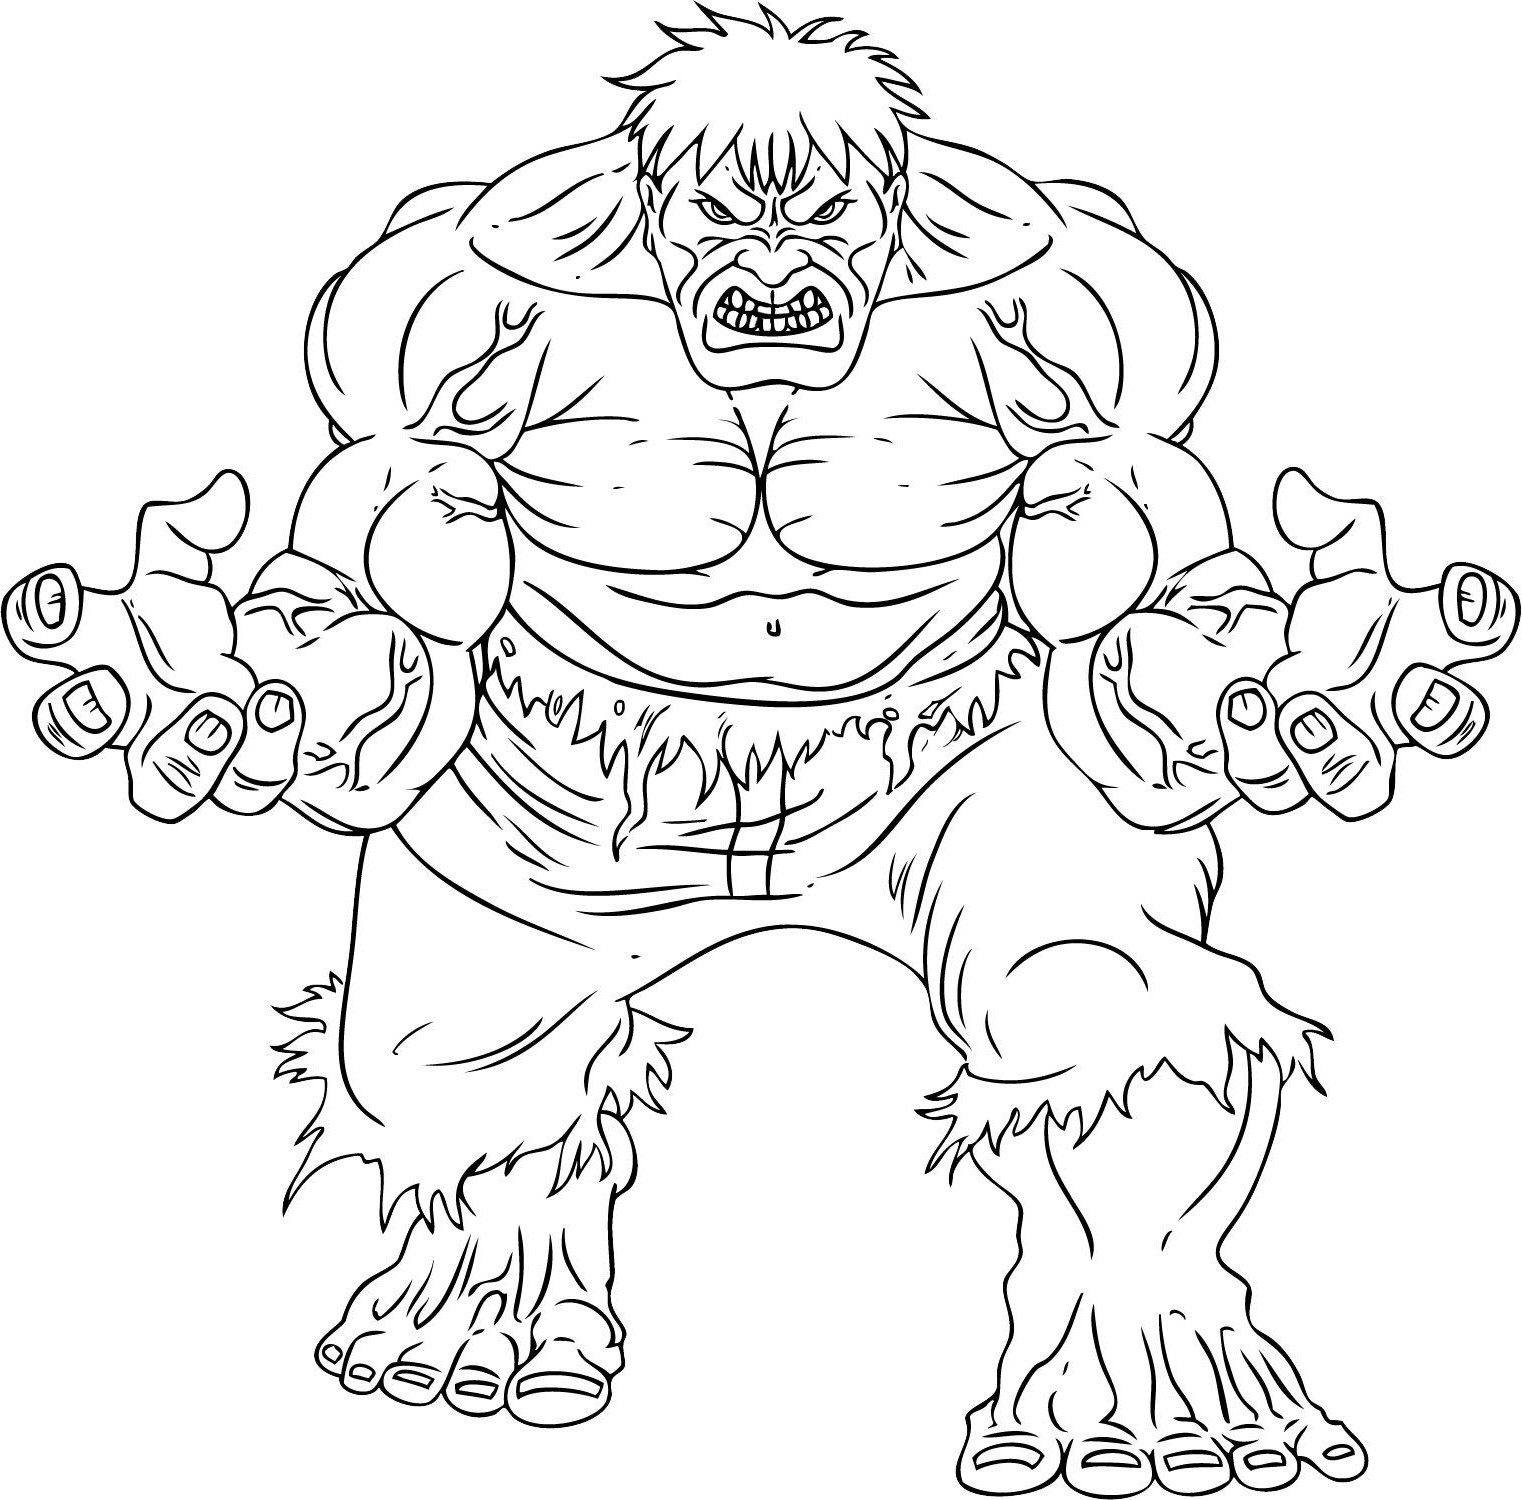 1522x1500 Incredible Hulk Coloring Pages New Incredible Hulk Coloring Pages